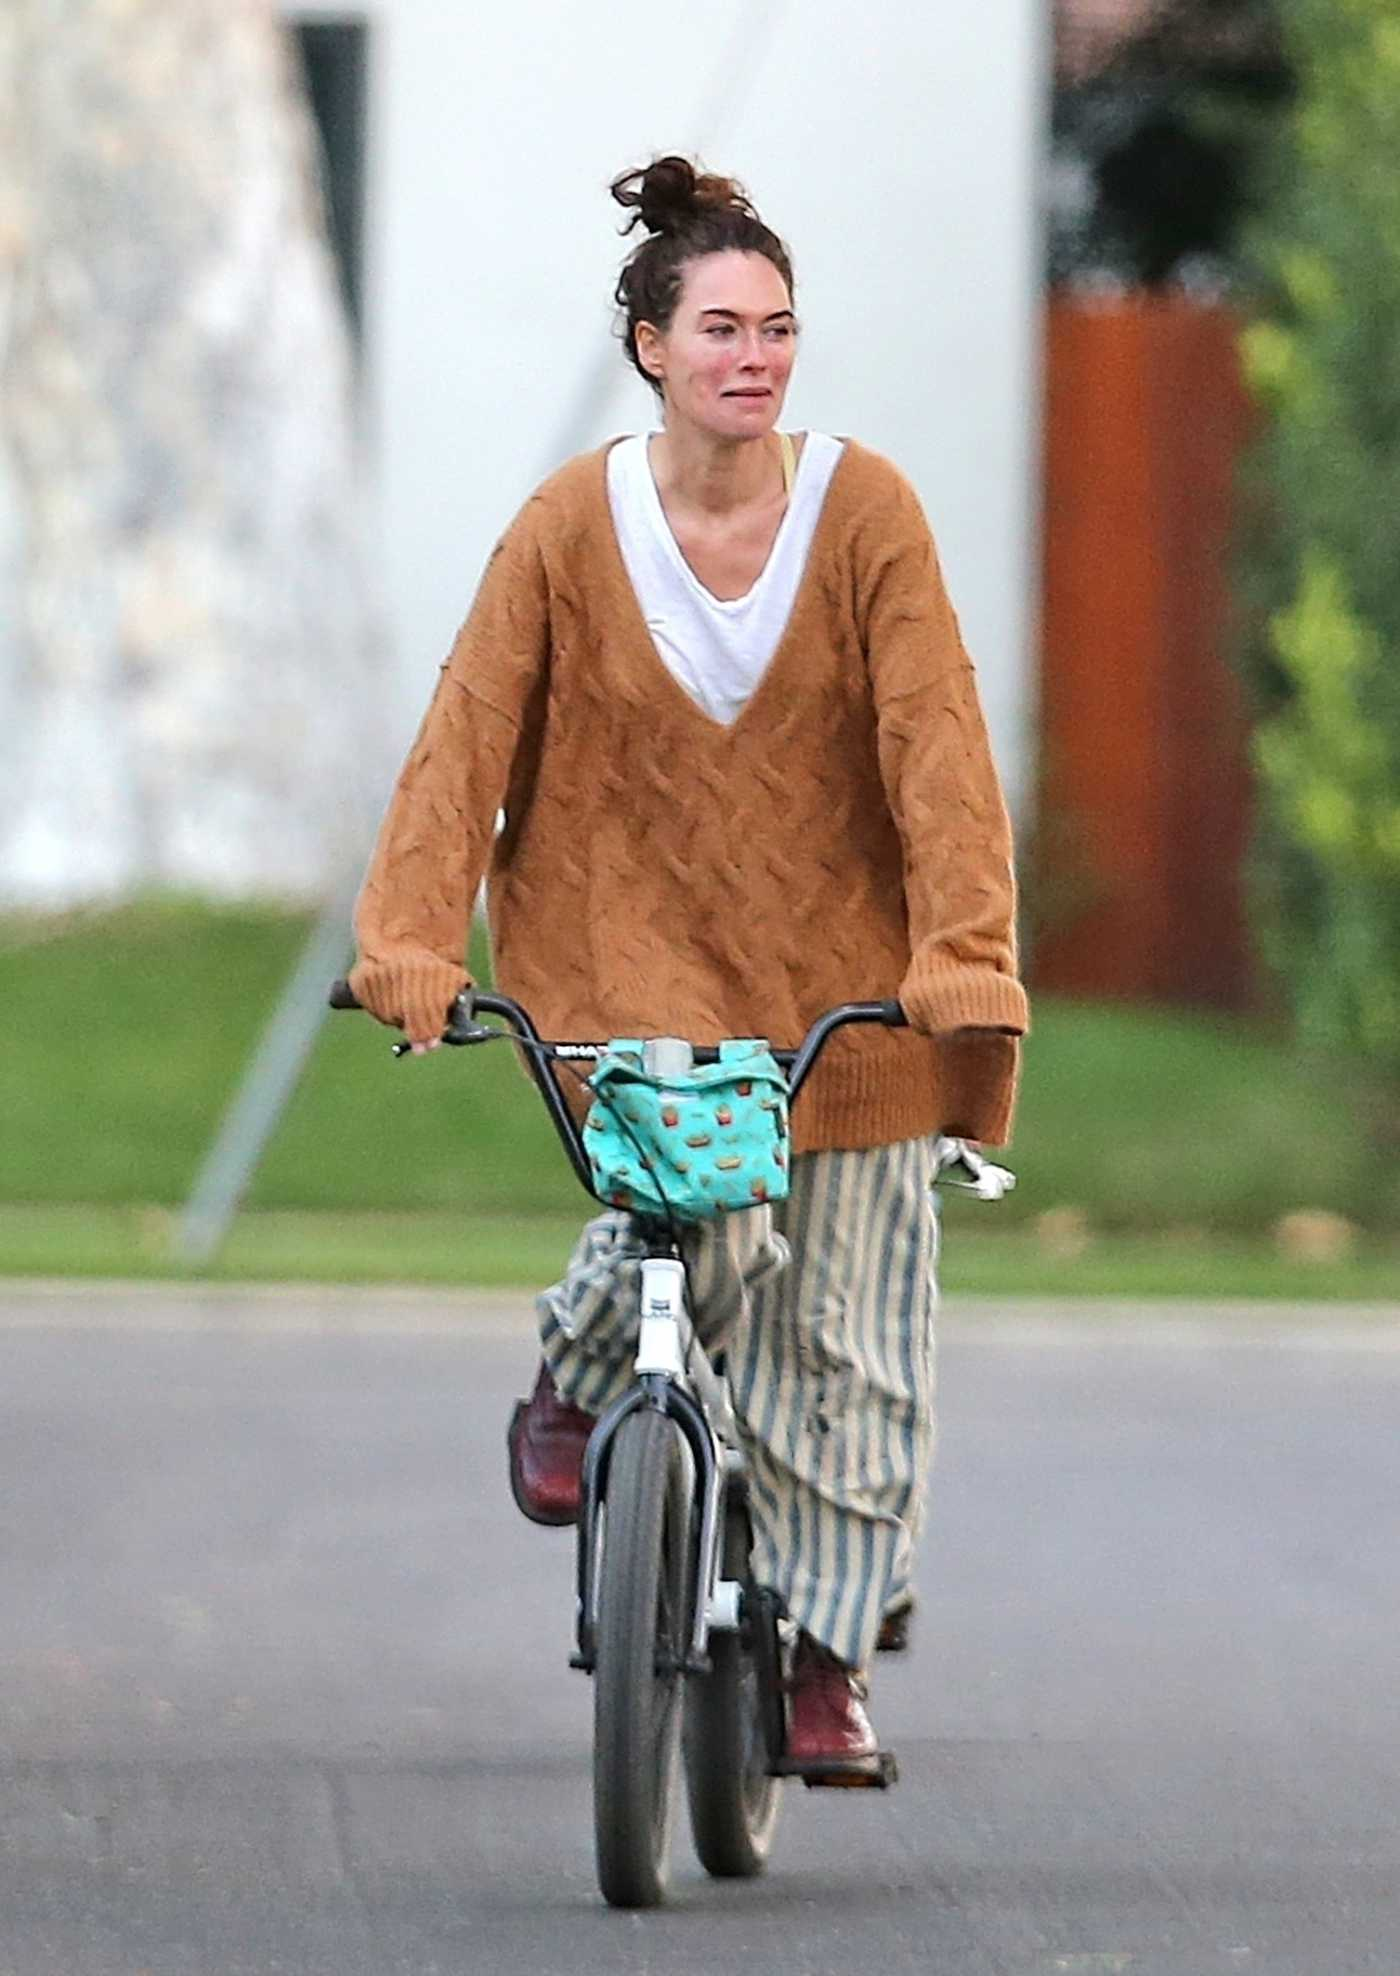 Lena Headey in a Tan Oversized Jumper Riding a Bicycle in Los Angeles 11/15/2020